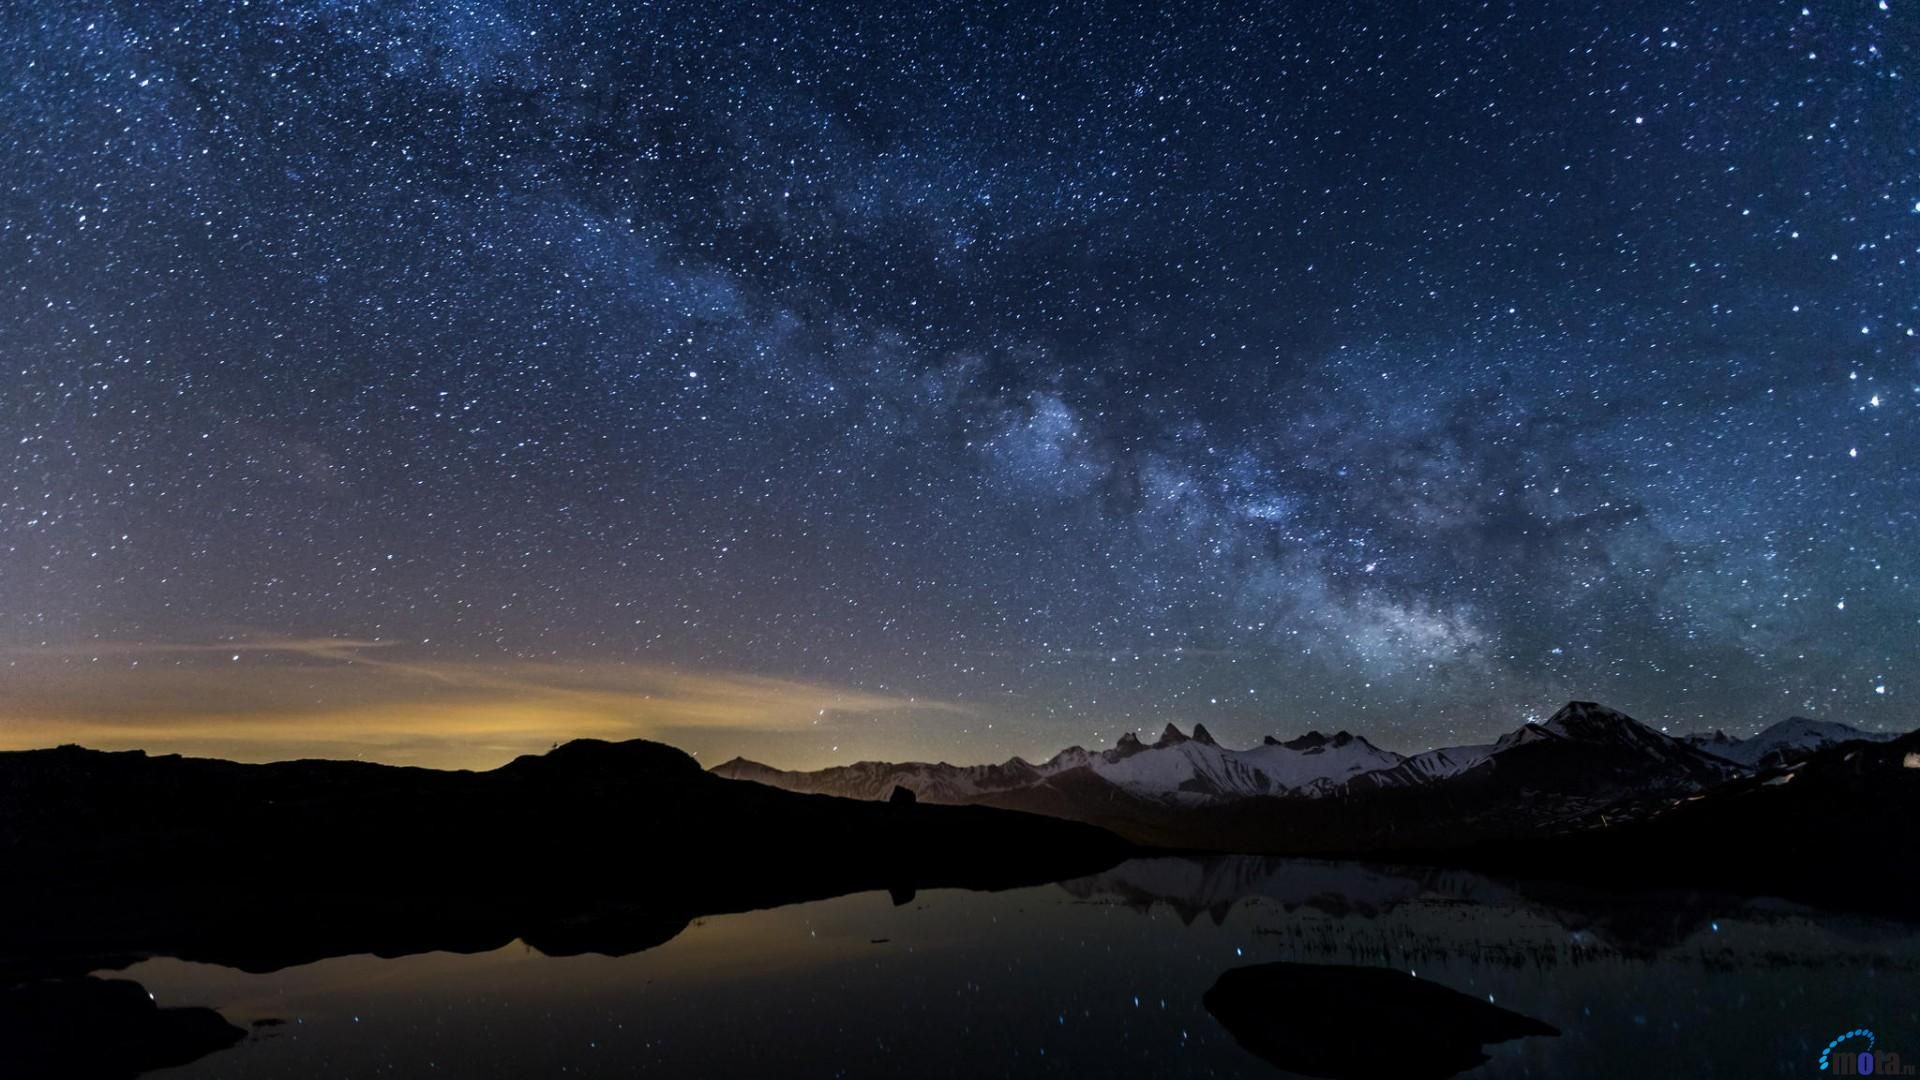 Night Sky In Russia Google Search Starry Night Wallpaper Background Images Hd Night Skies